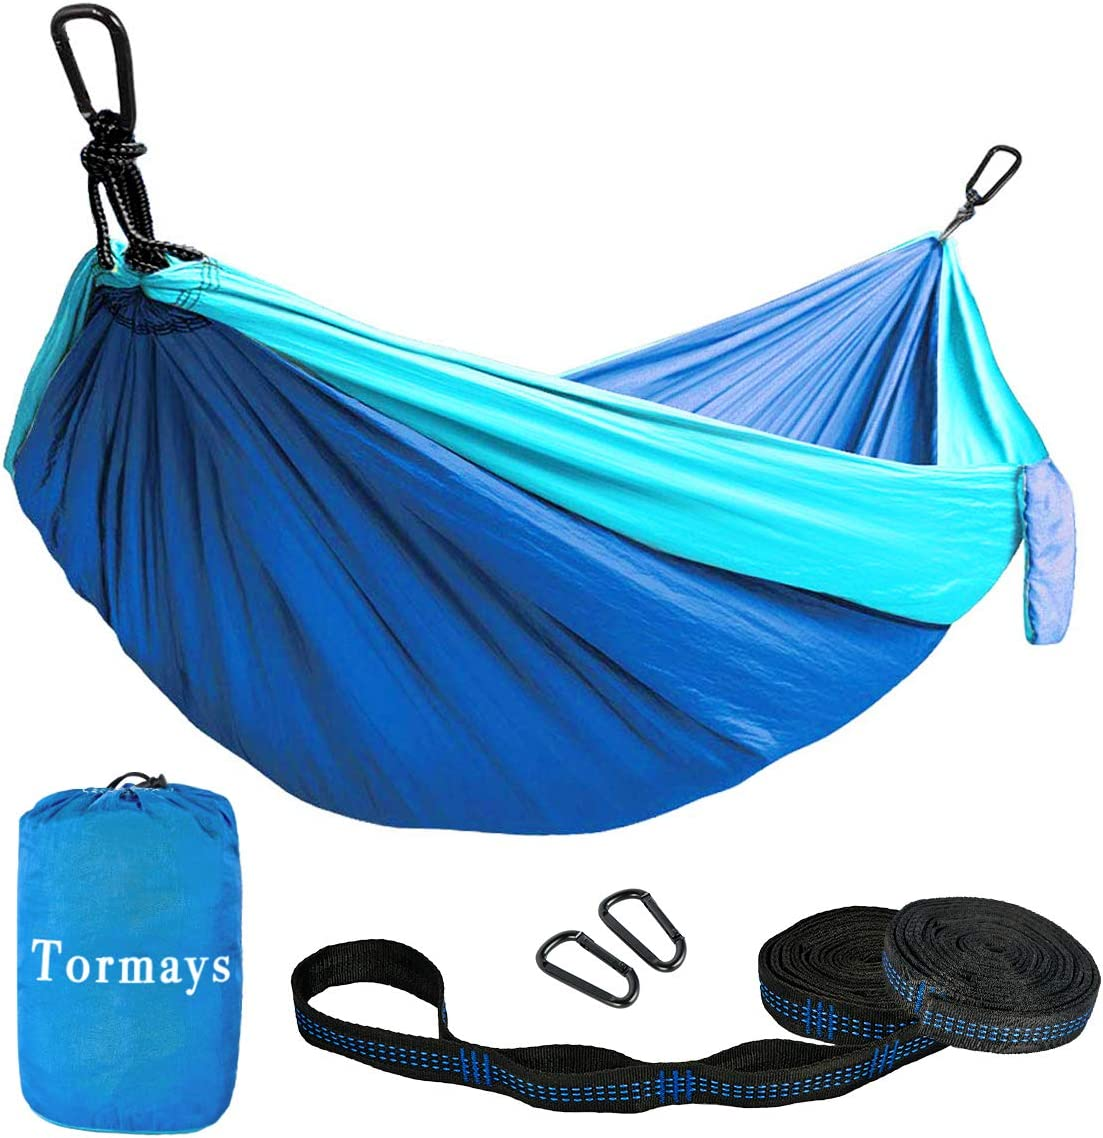 Tormays 660lbs Camping Hammock, Double Portable Hammocks with 2 Tree Straps, Lightweight Nylon Parachute Hammocks for Backpacking, Travel, Beach, Backyard, Patio, Hiking Blue